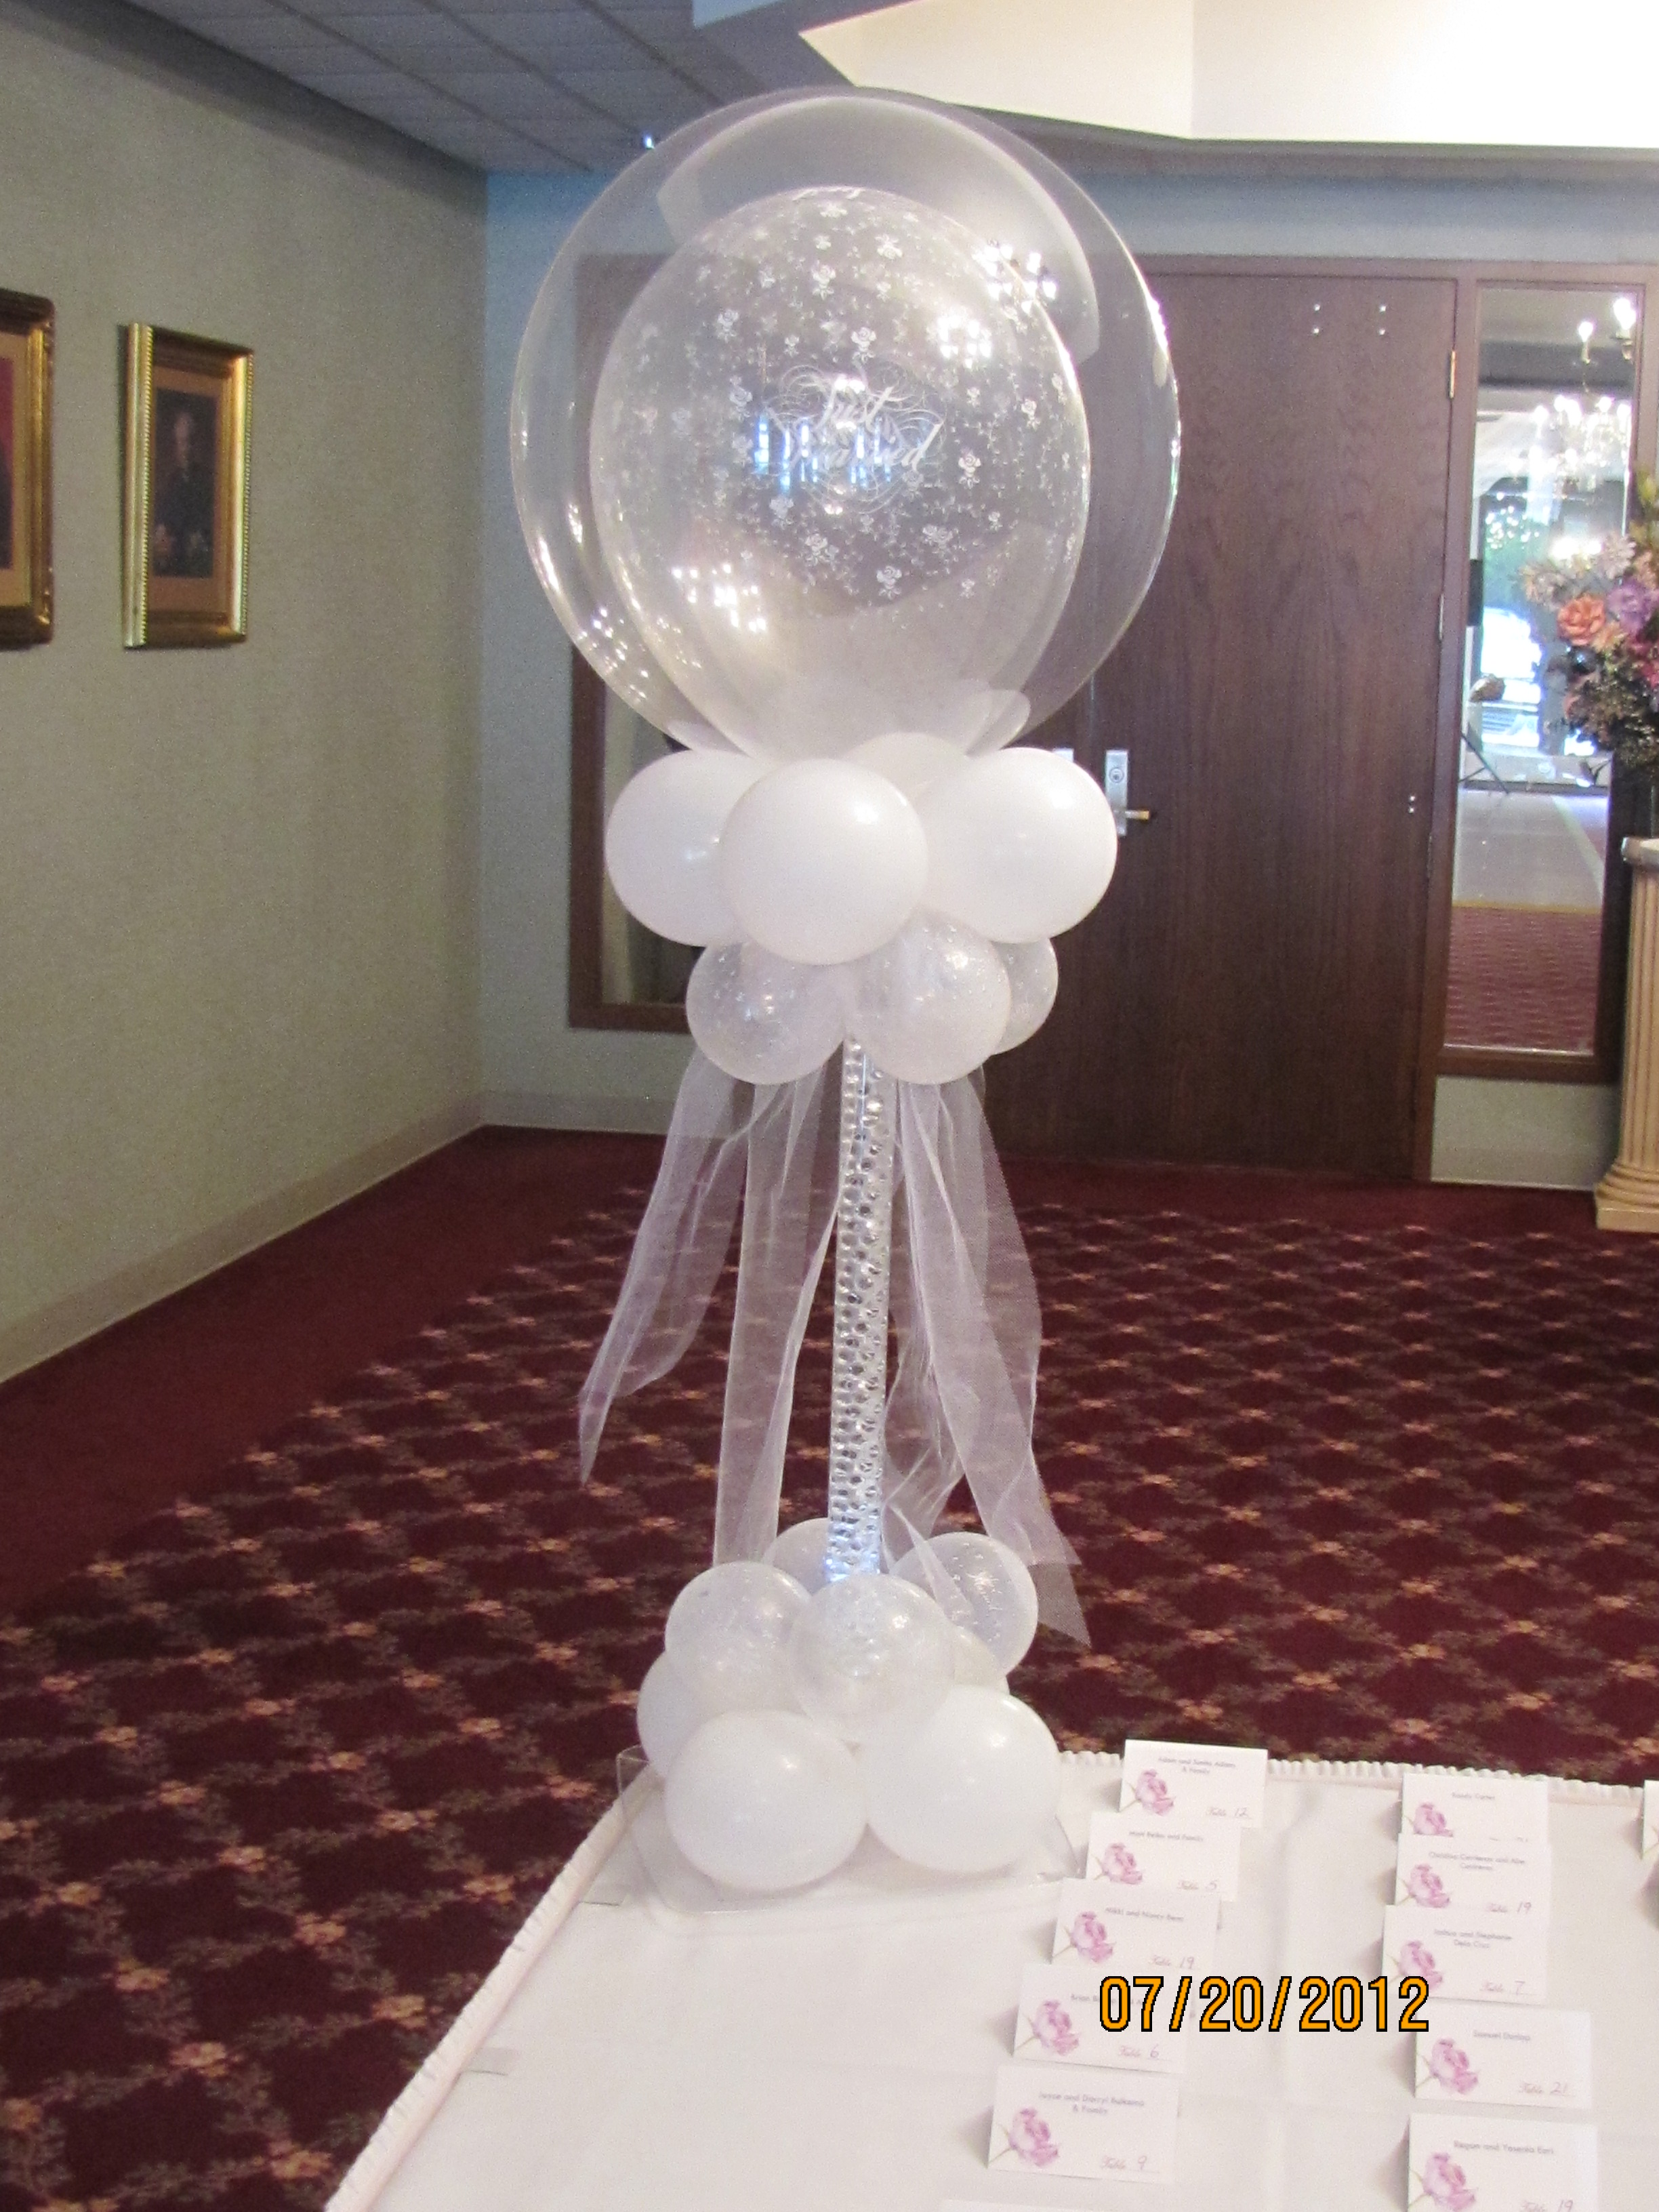 Northwest indiana balloon decorating amytheballoonlady for Balloon decoration ideas no helium